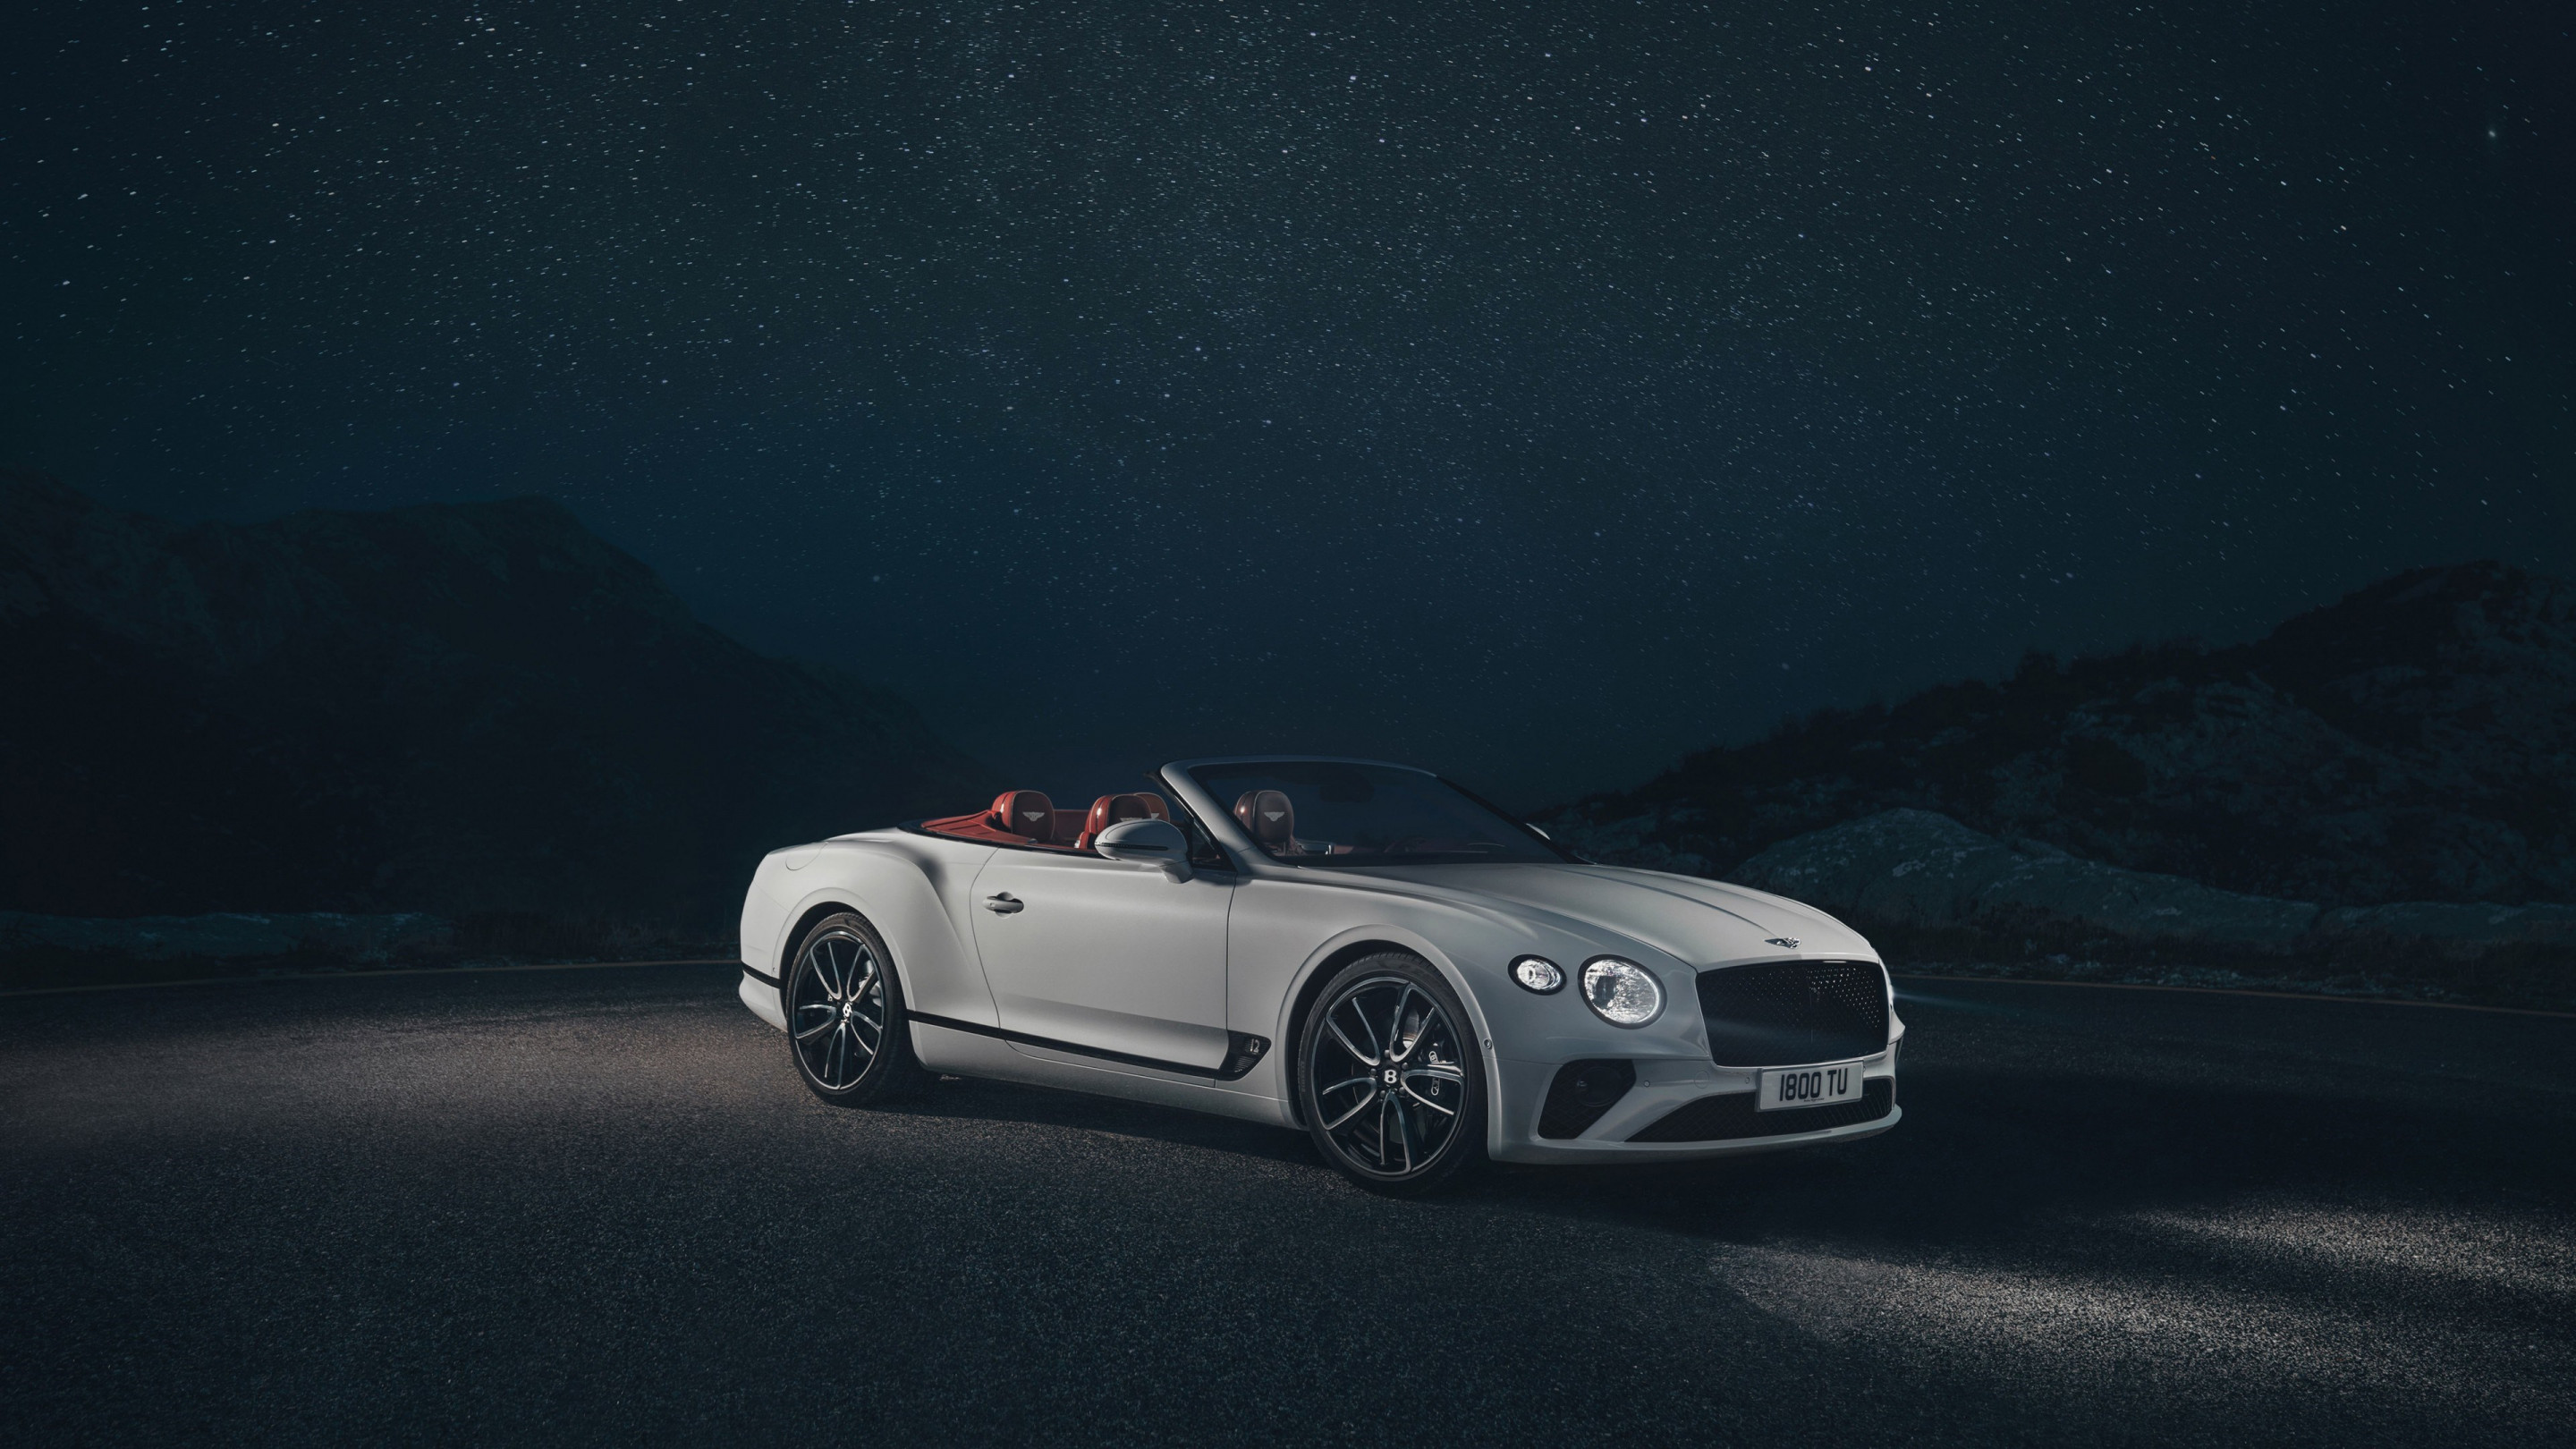 Bentley Continental GT wallpaper 2880x1620